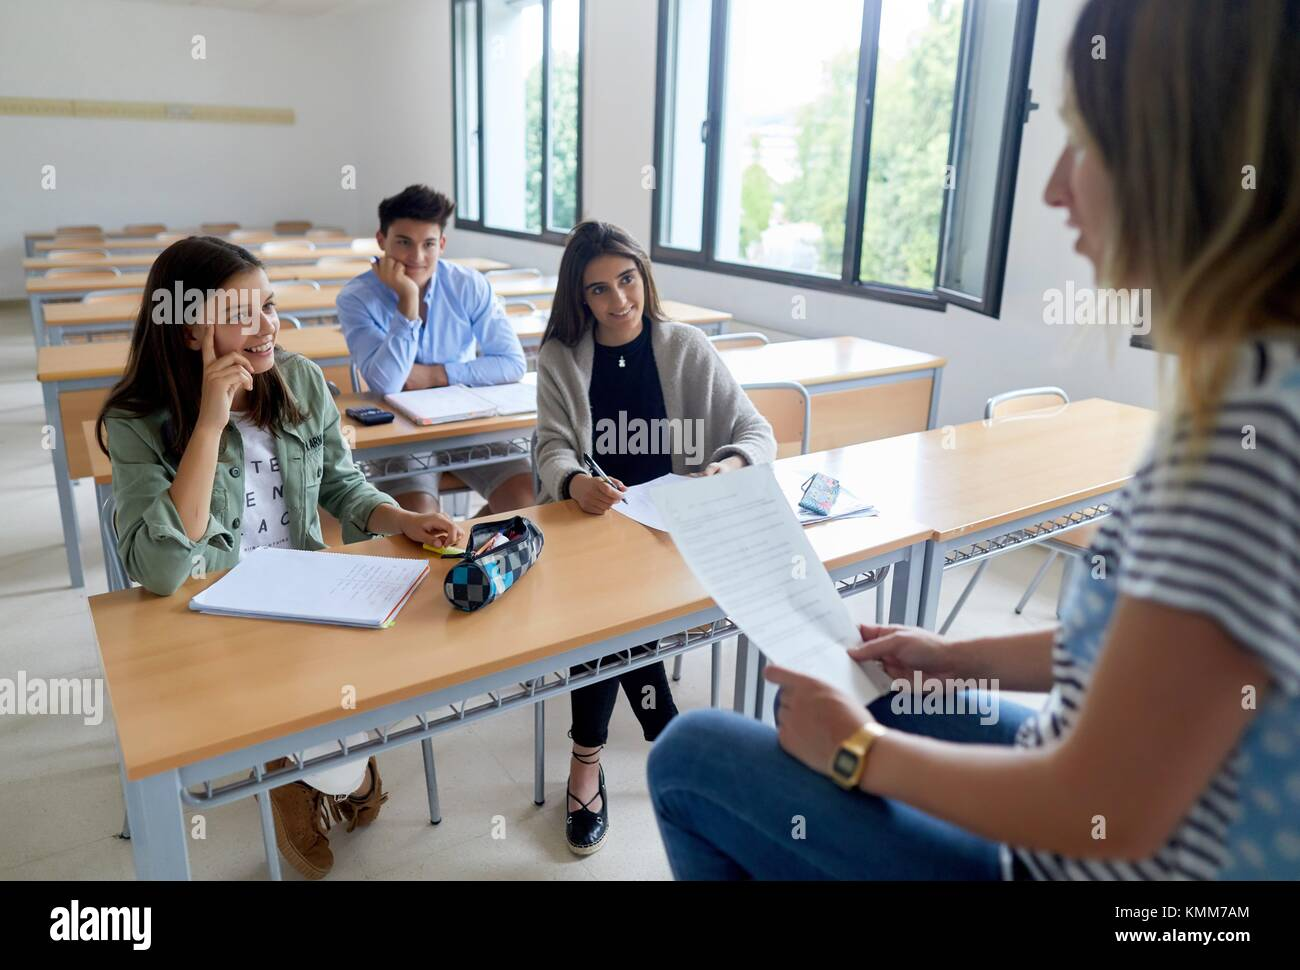 Teacher with students. Classroom. College. School of Business Studies. University. Donostia. San Sebastian. Gipuzkoa. - Stock Image